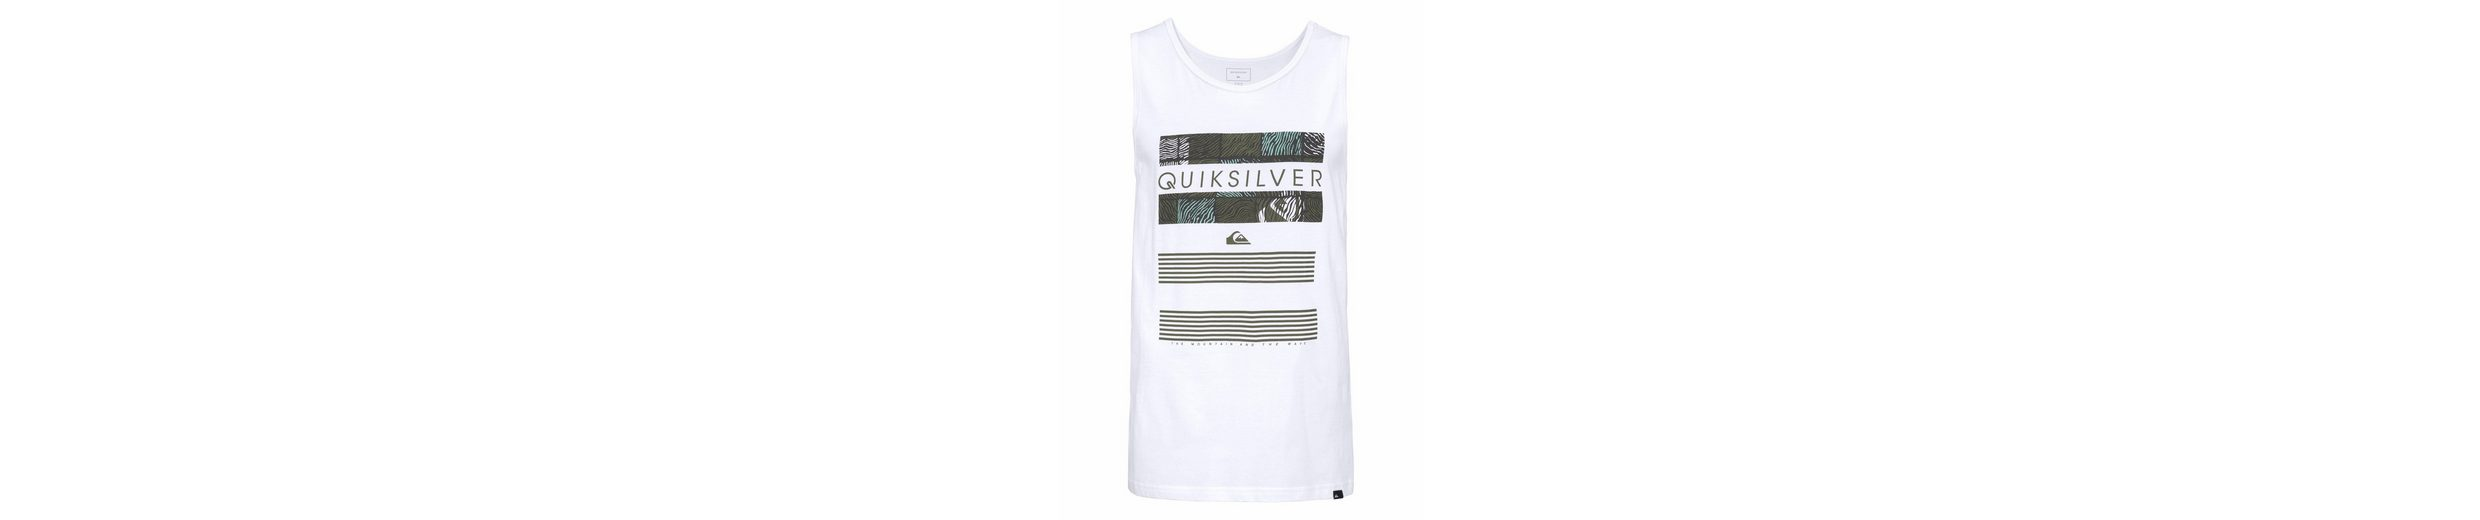 Quiksilver Tanktop CAMBOK PACK JUNGLE UP (Packung, 2 tlg., 2er-Pack), Im Doppelpack